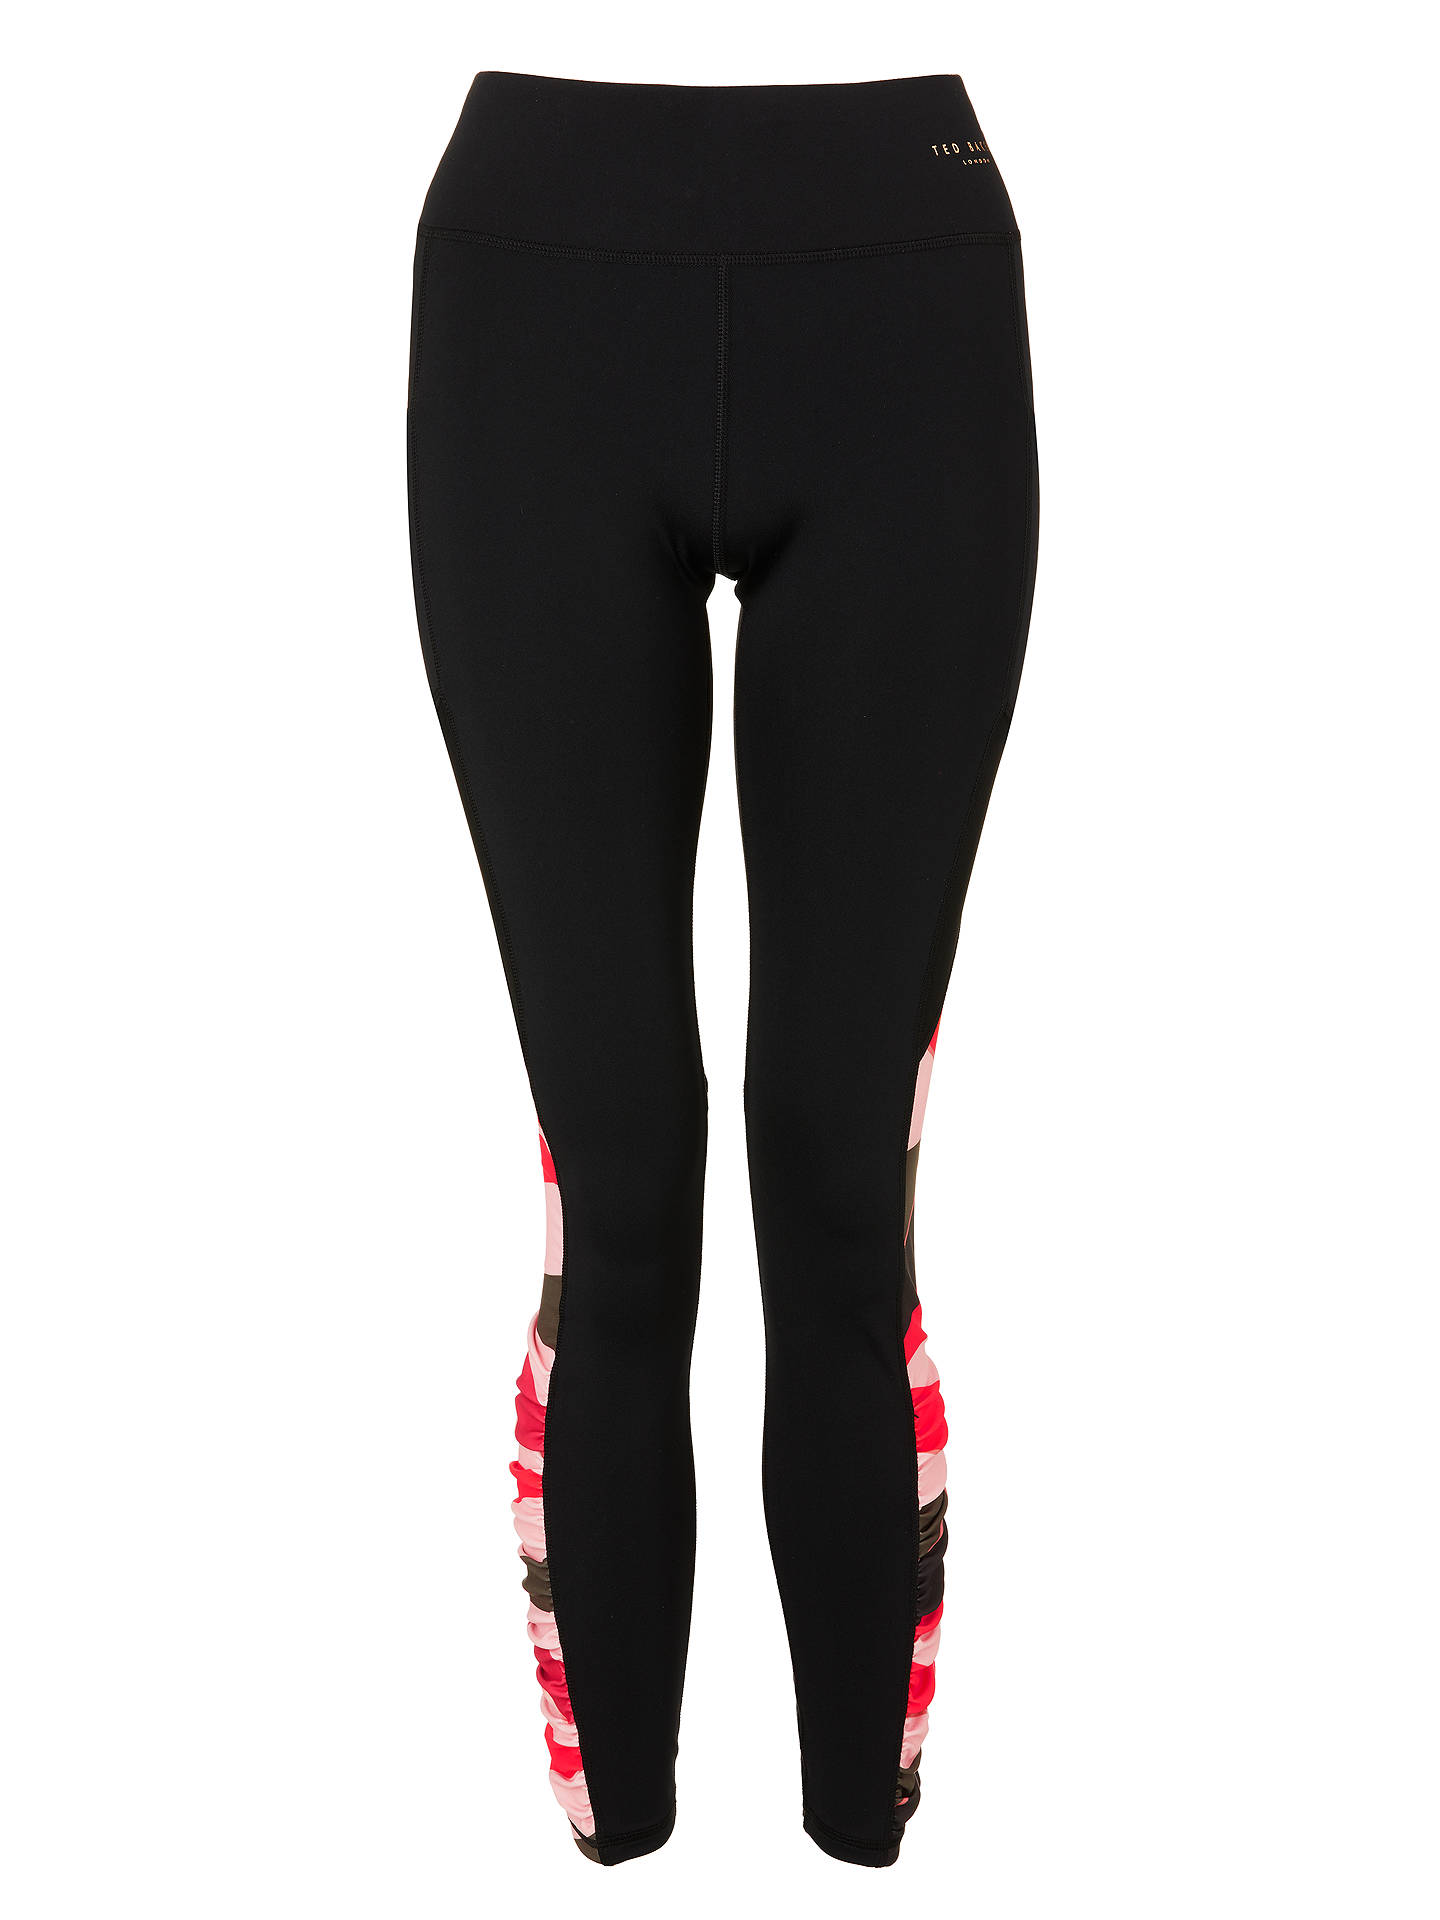 BuyTed Baker Fit to a T Sahara Bloom Panel Yoga Leggings, Xmid Red, XS Online at johnlewis.com